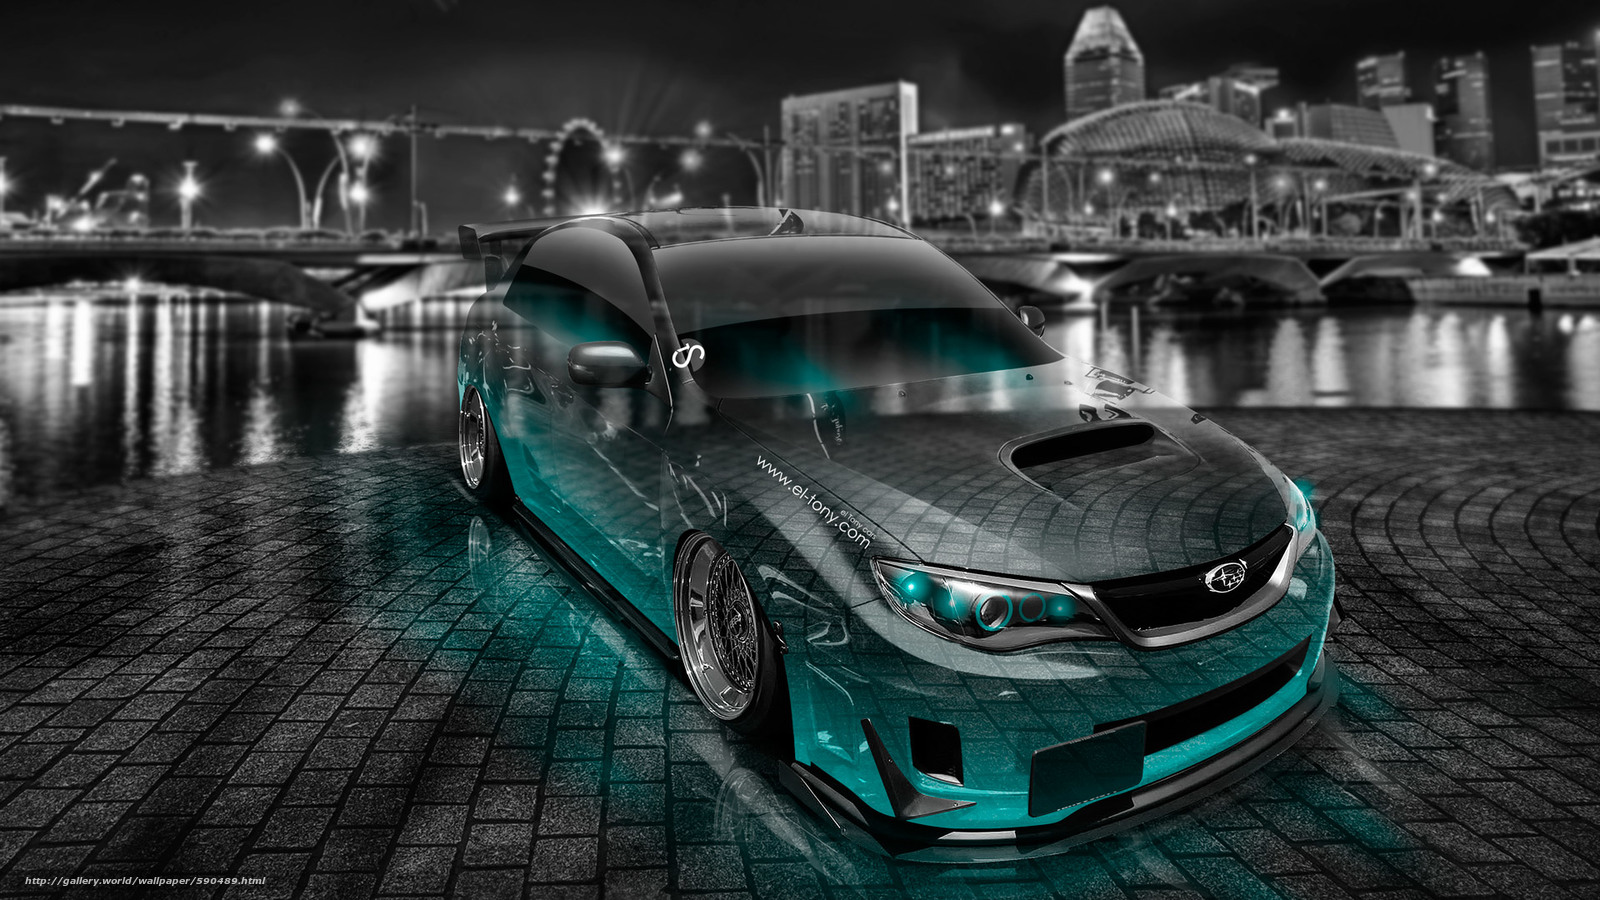 Download wallpaper Tony Kokhan,  Subaru,  Impreza,  WRX free desktop wallpaper in the resolution 1920x1080 — picture №590489